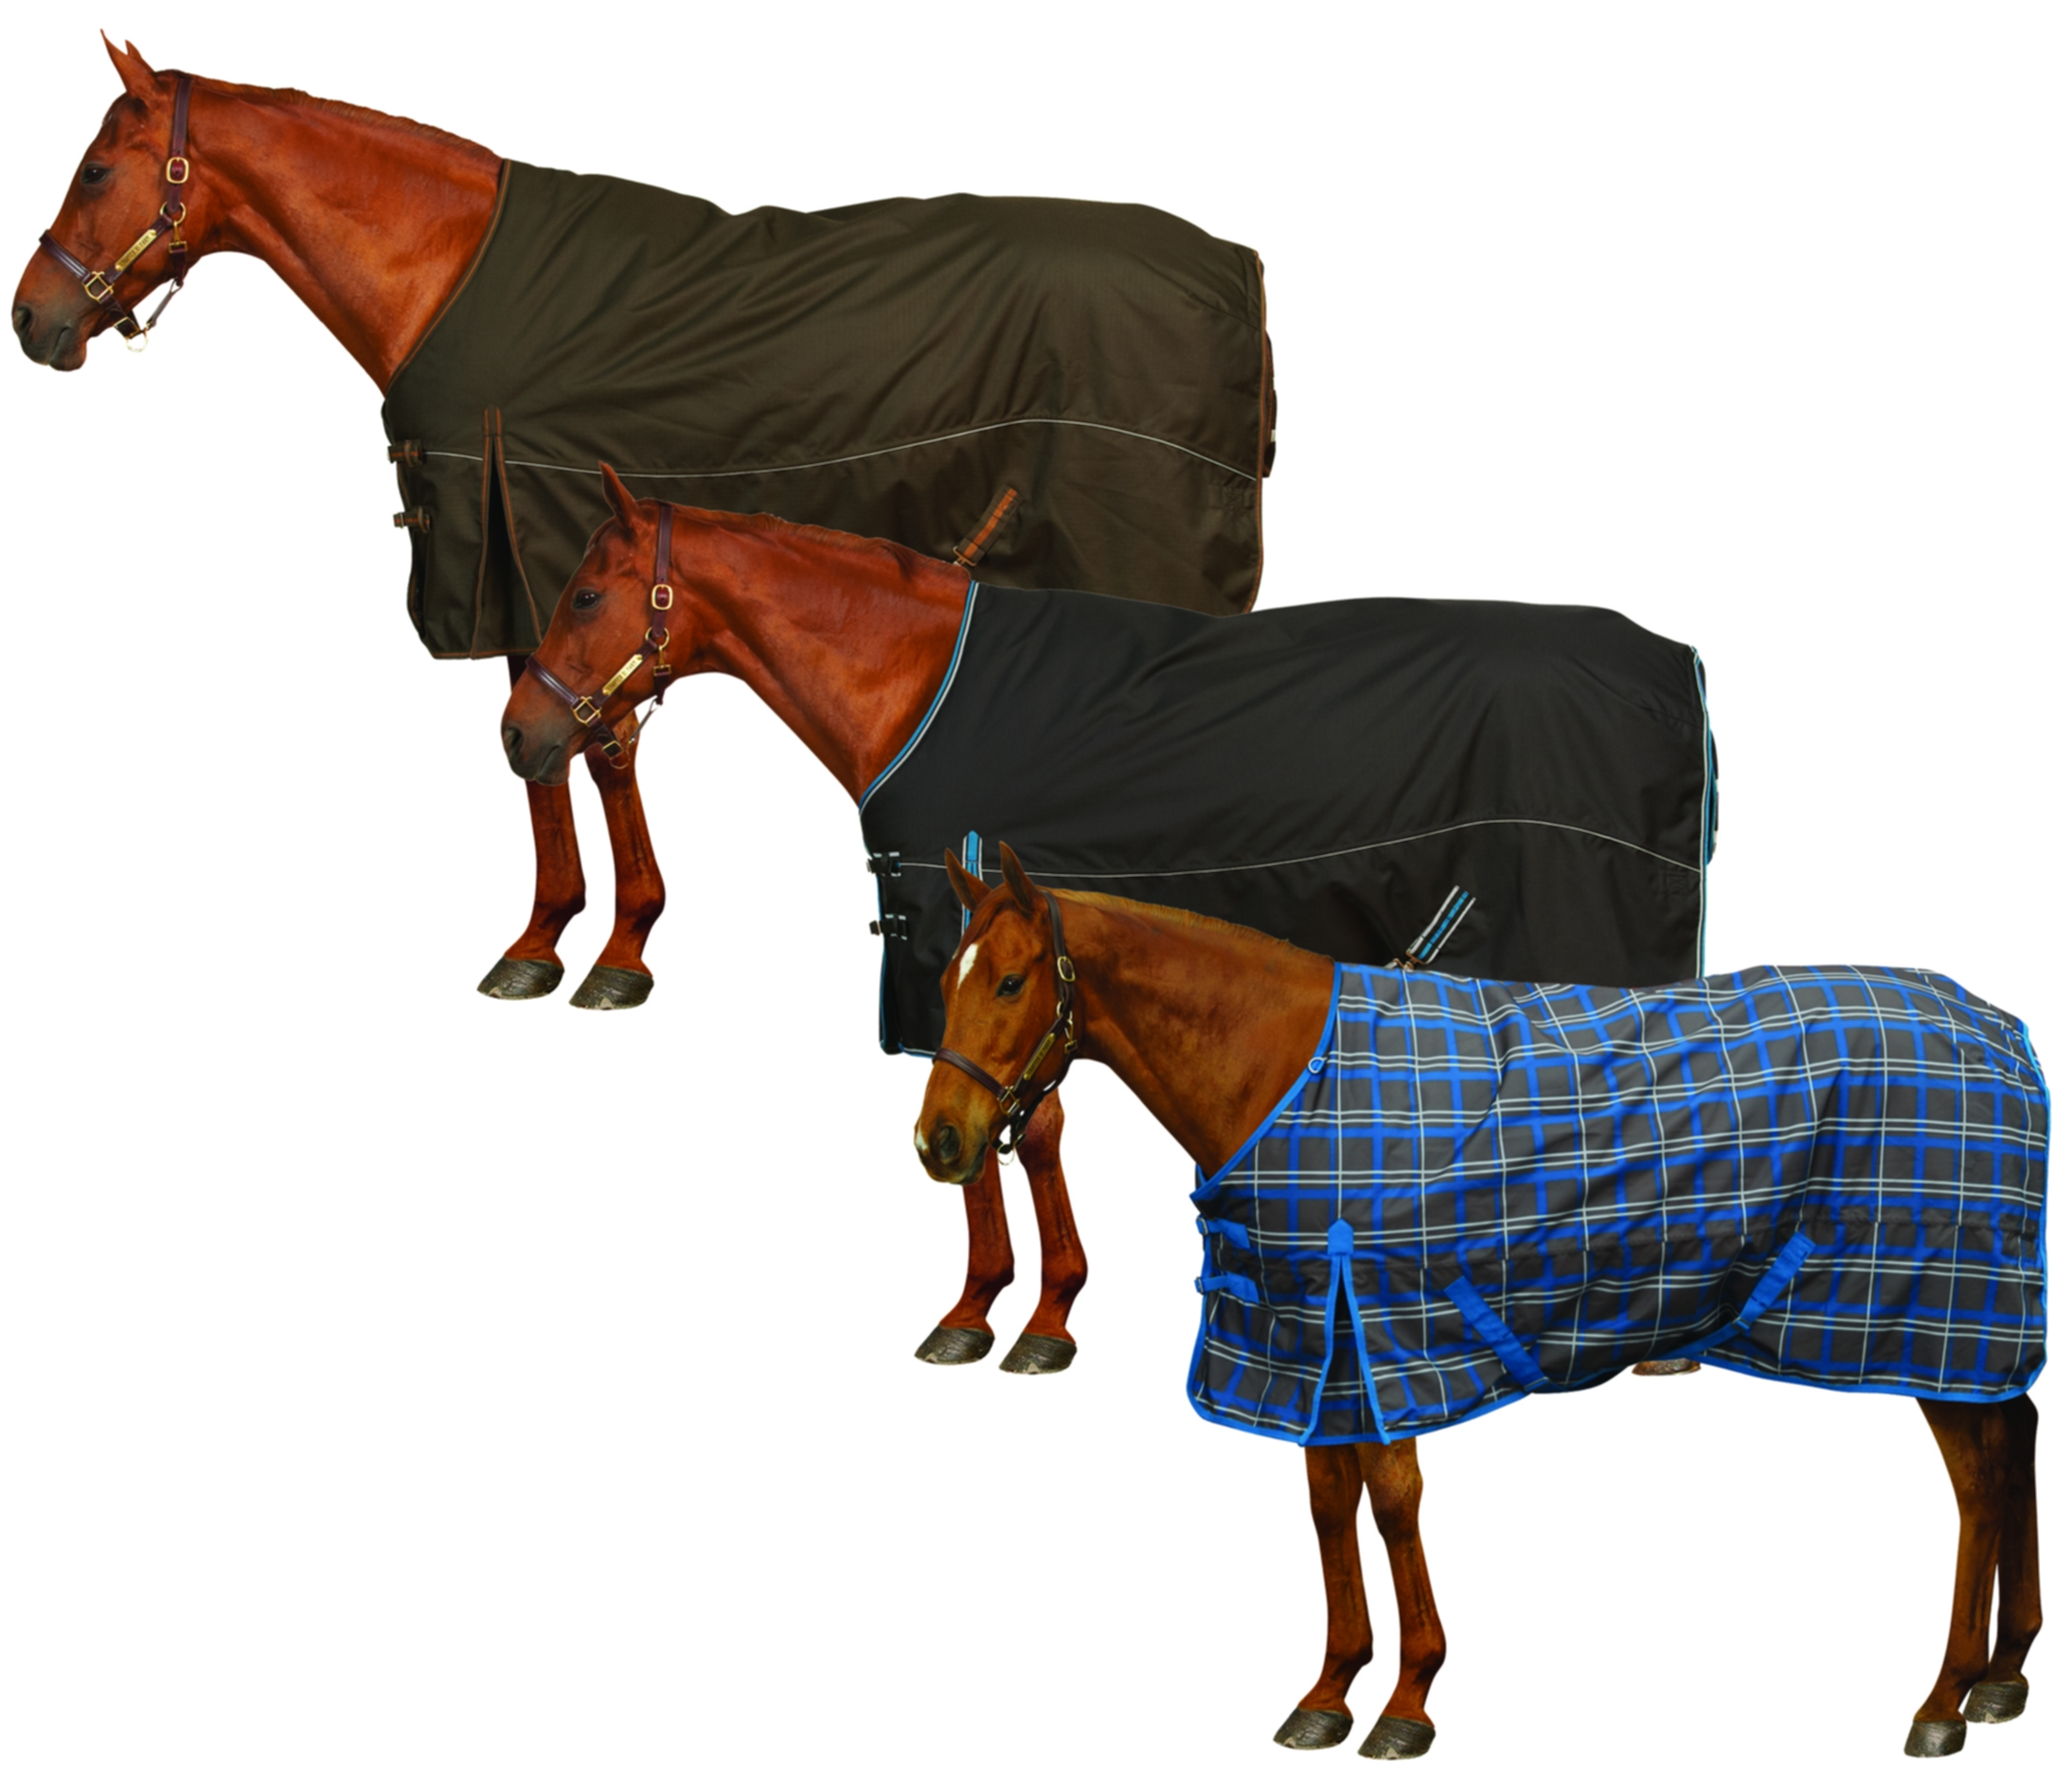 Centaur 1200D Waterproof / Breathable Heavyweight Blanket